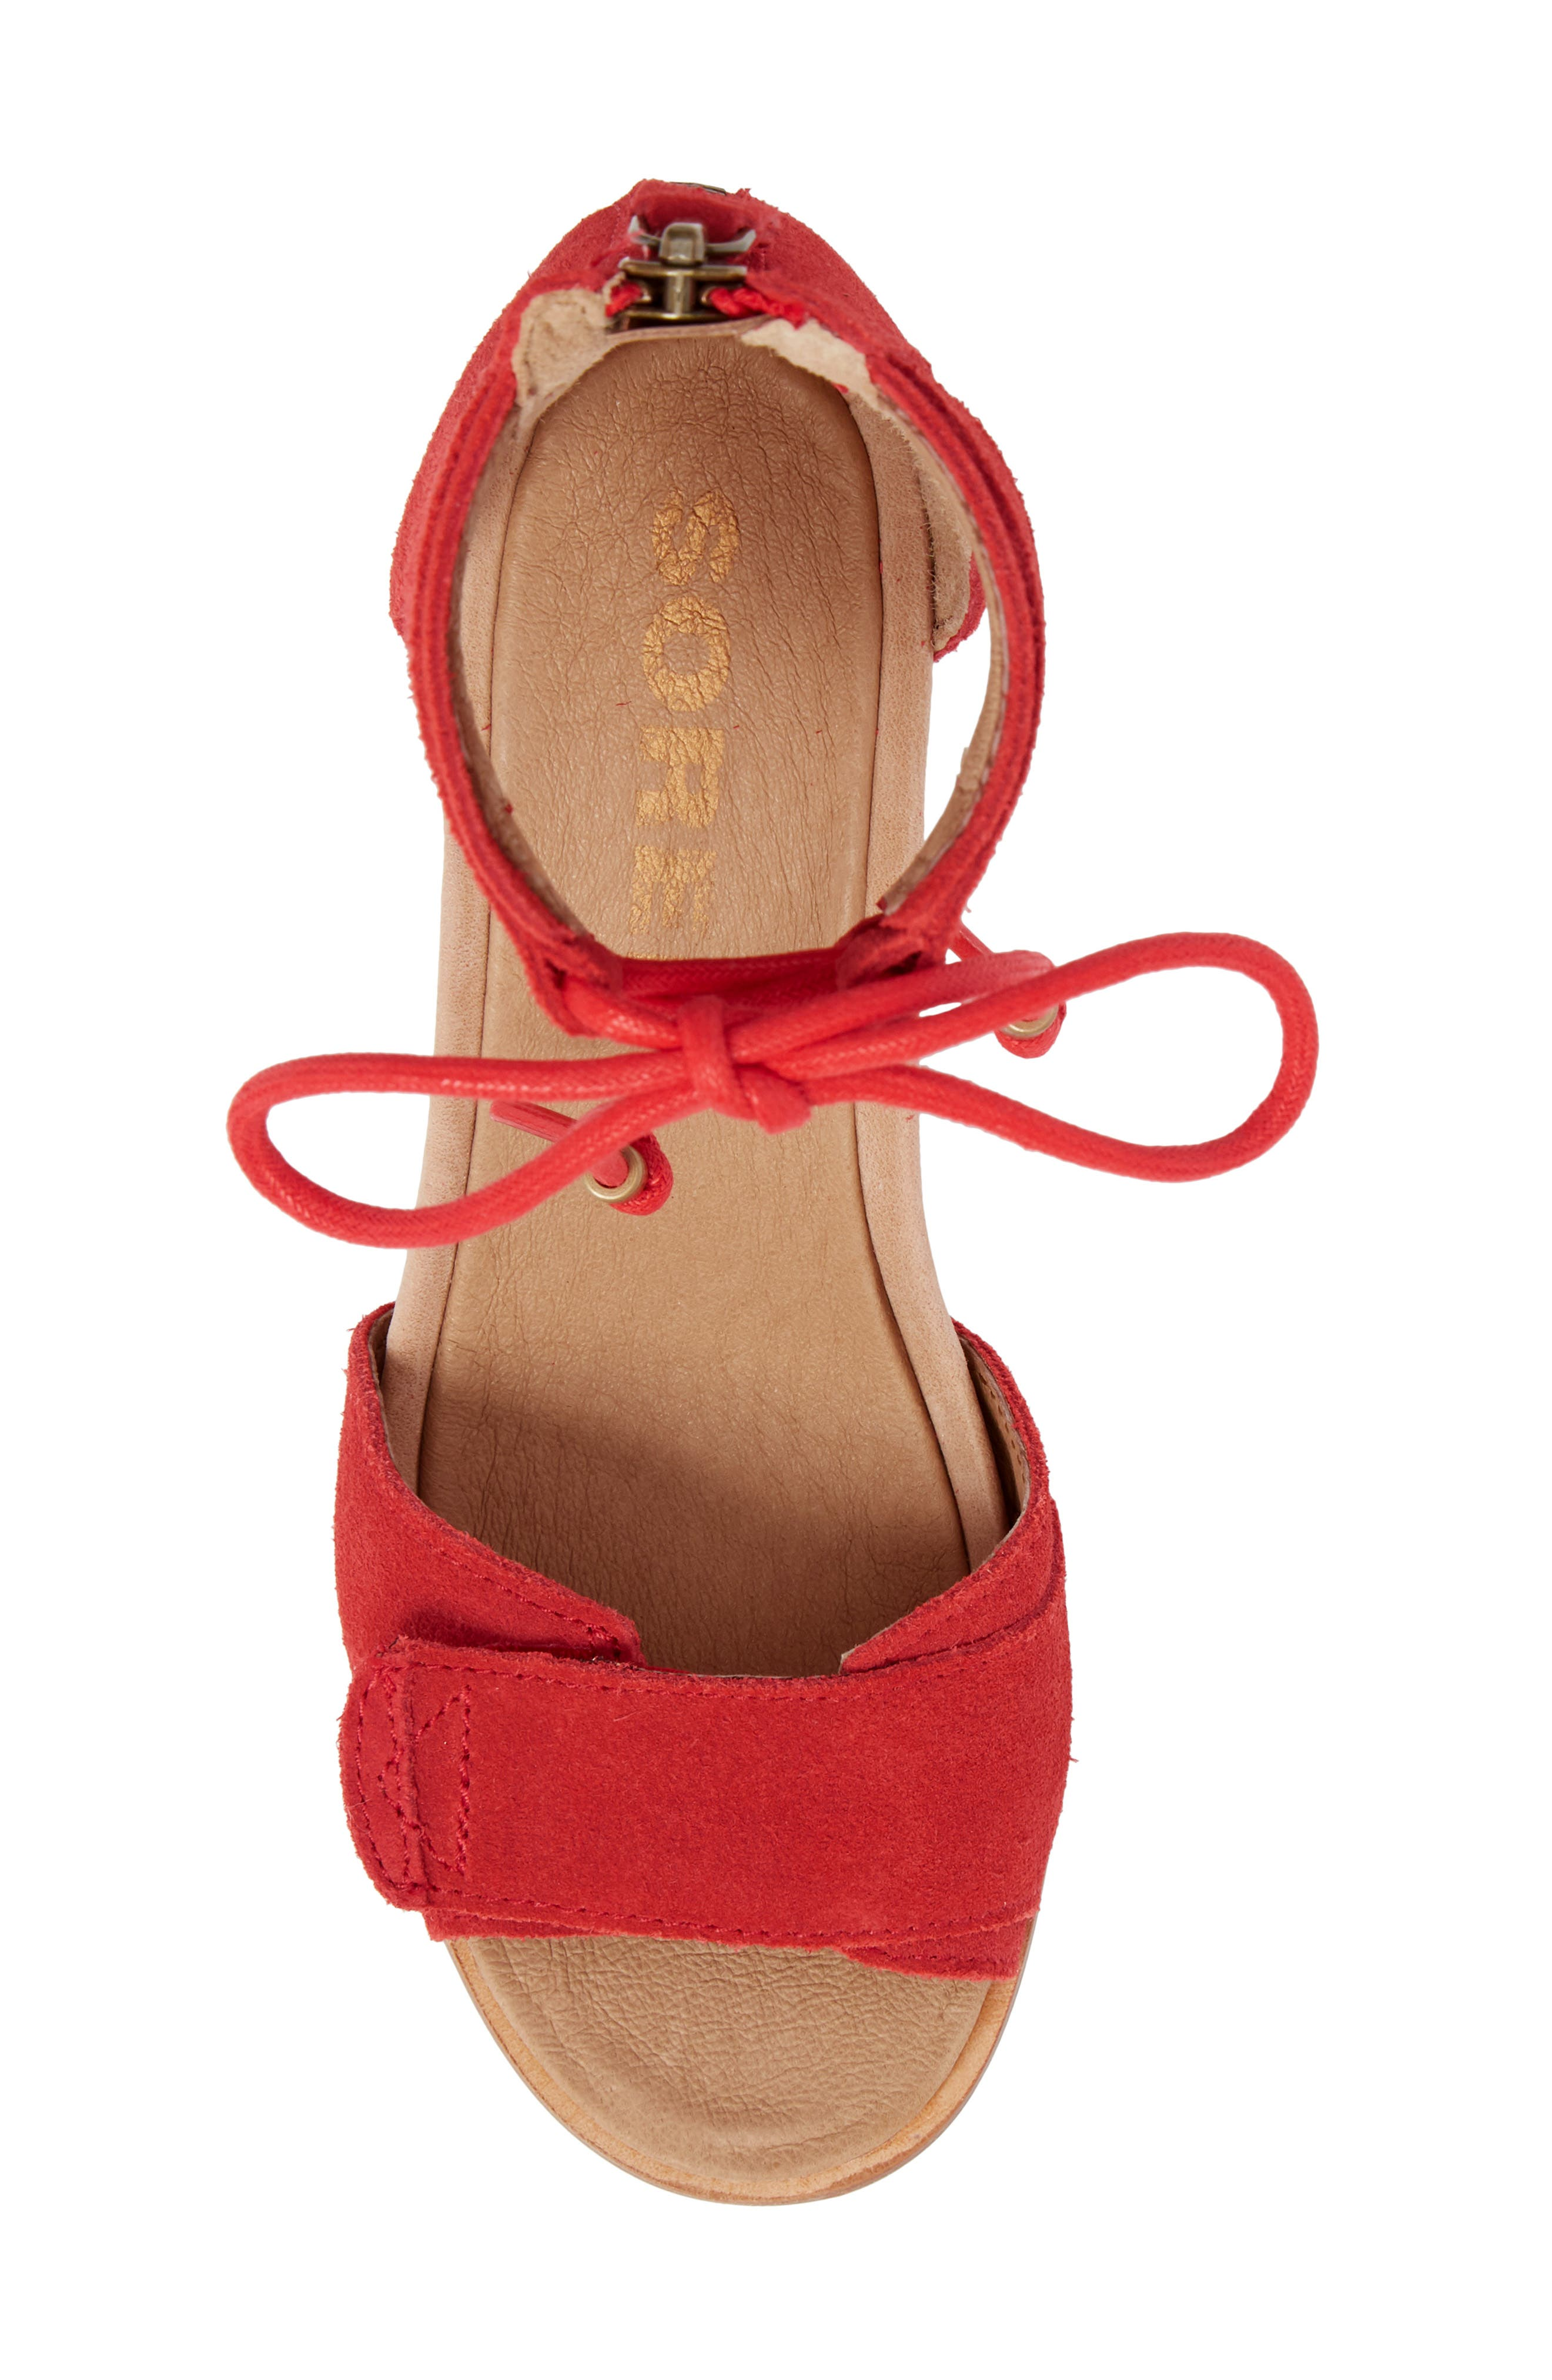 Joanie Cuff Wedge Sandal,                             Alternate thumbnail 5, color,                             Bright Red